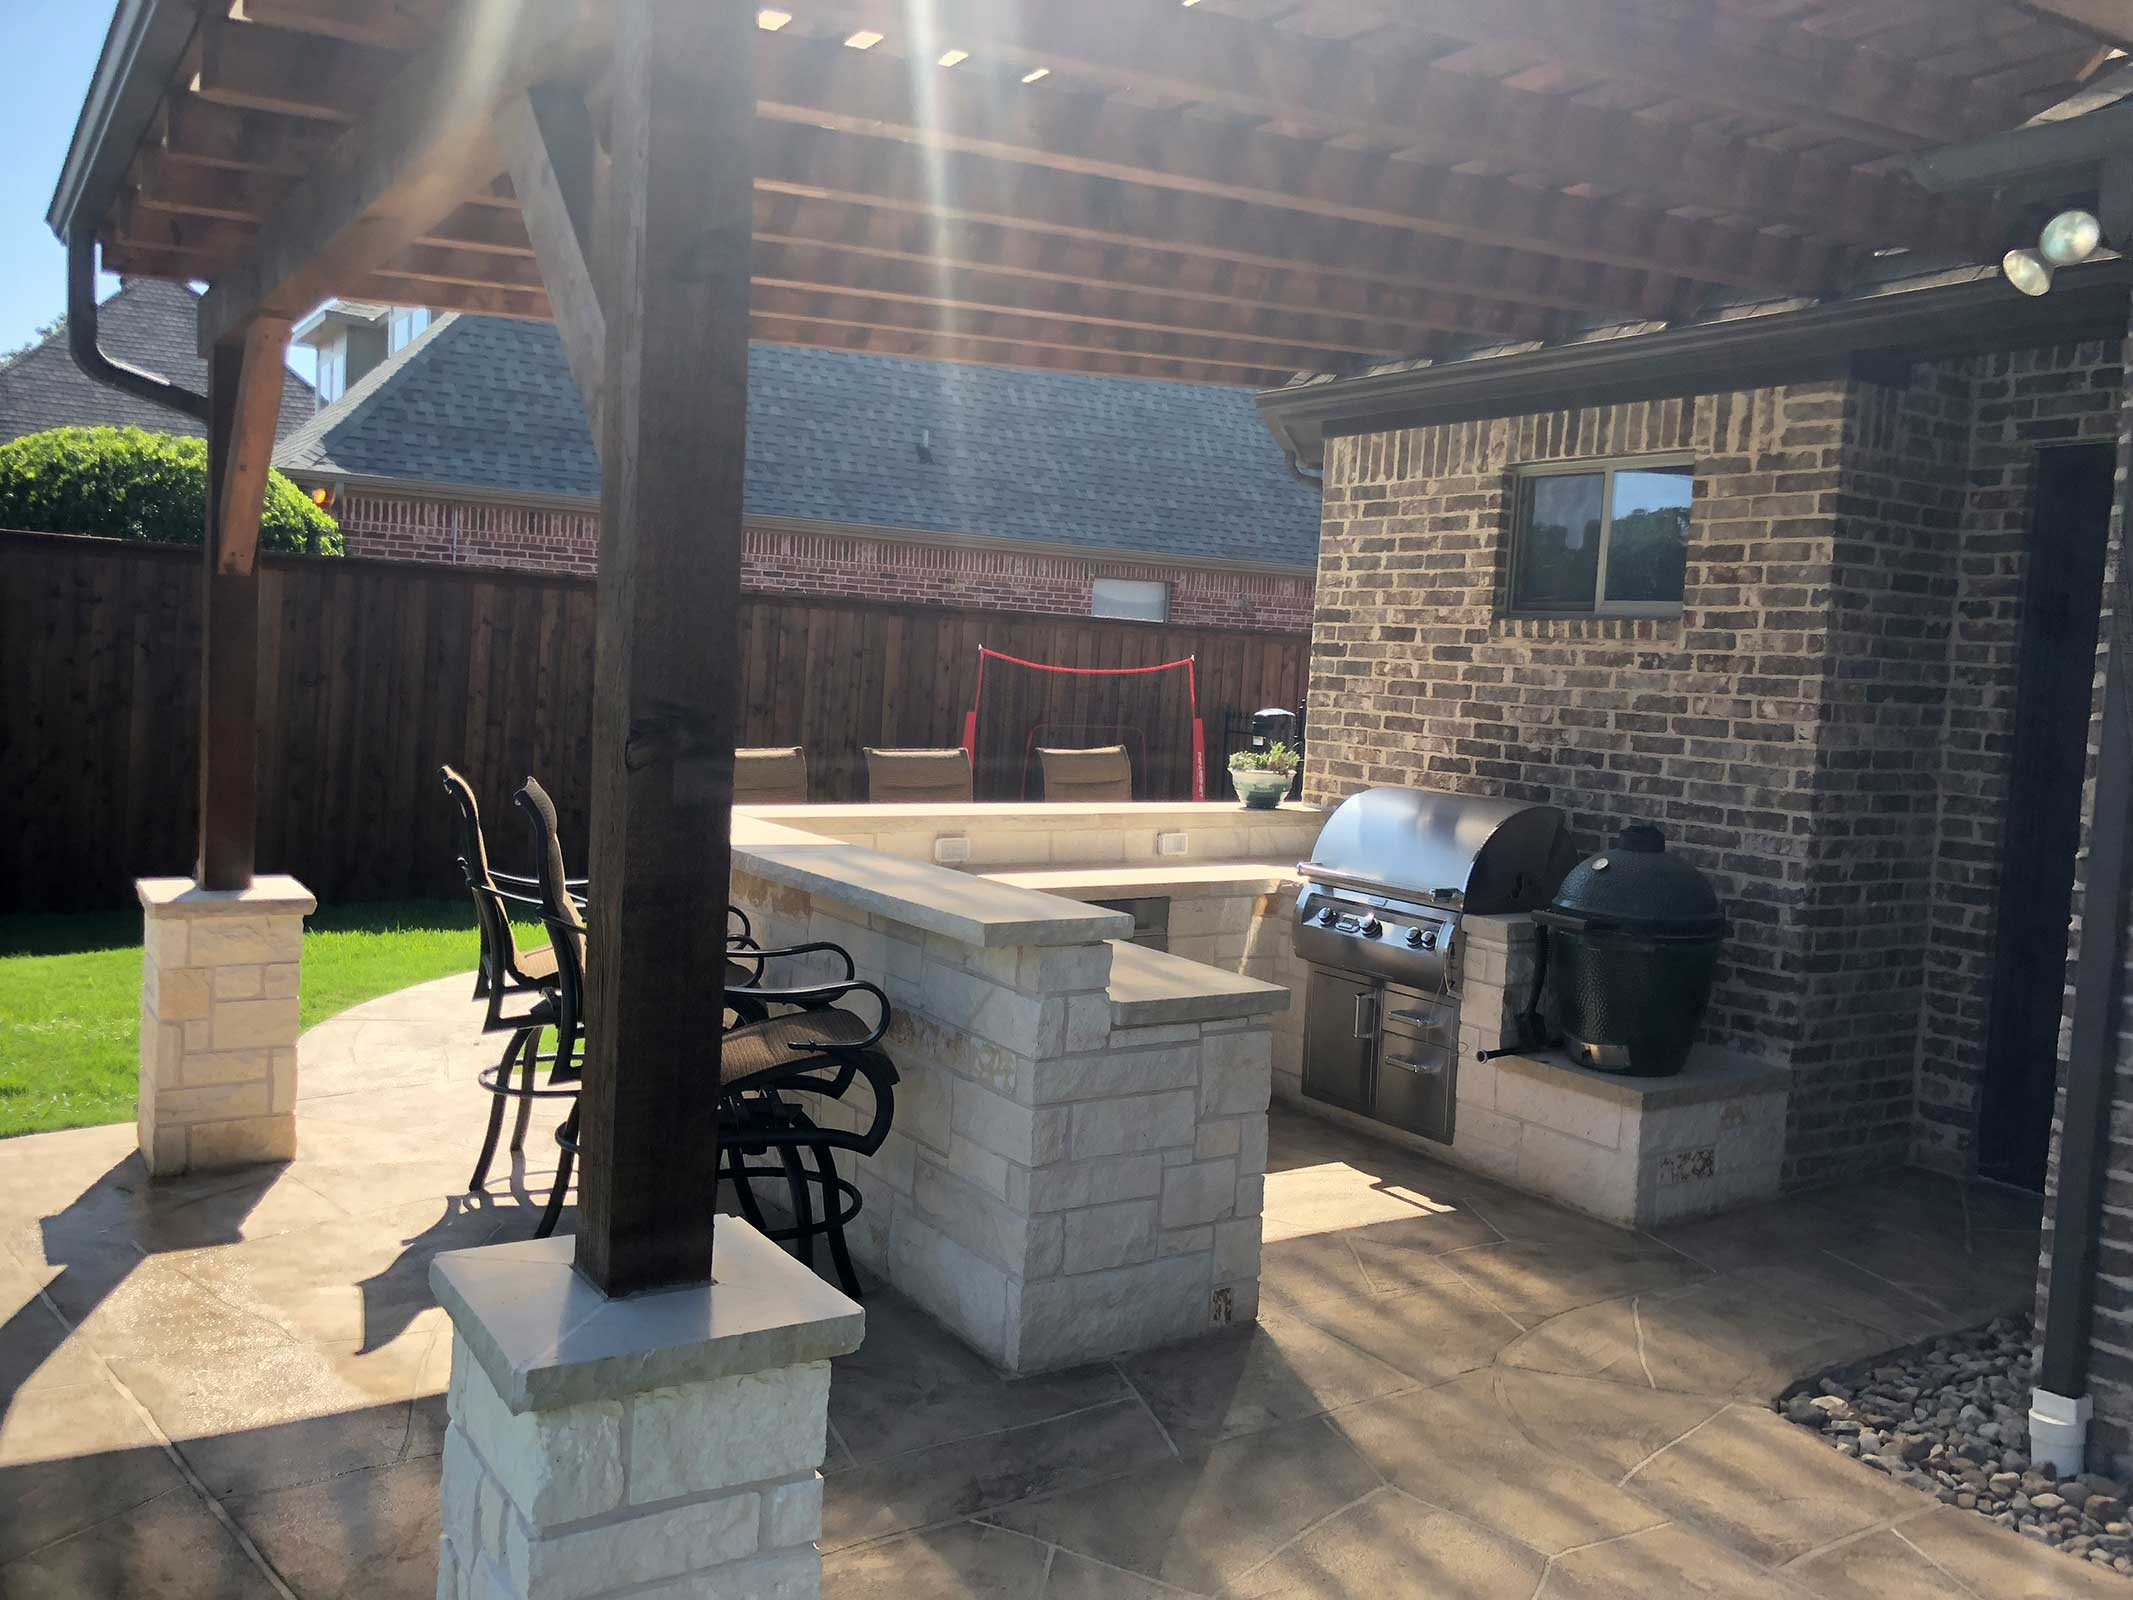 Outdoor Kitchens Colleyville, Pictures Of Outdoor Kitchens And Bars